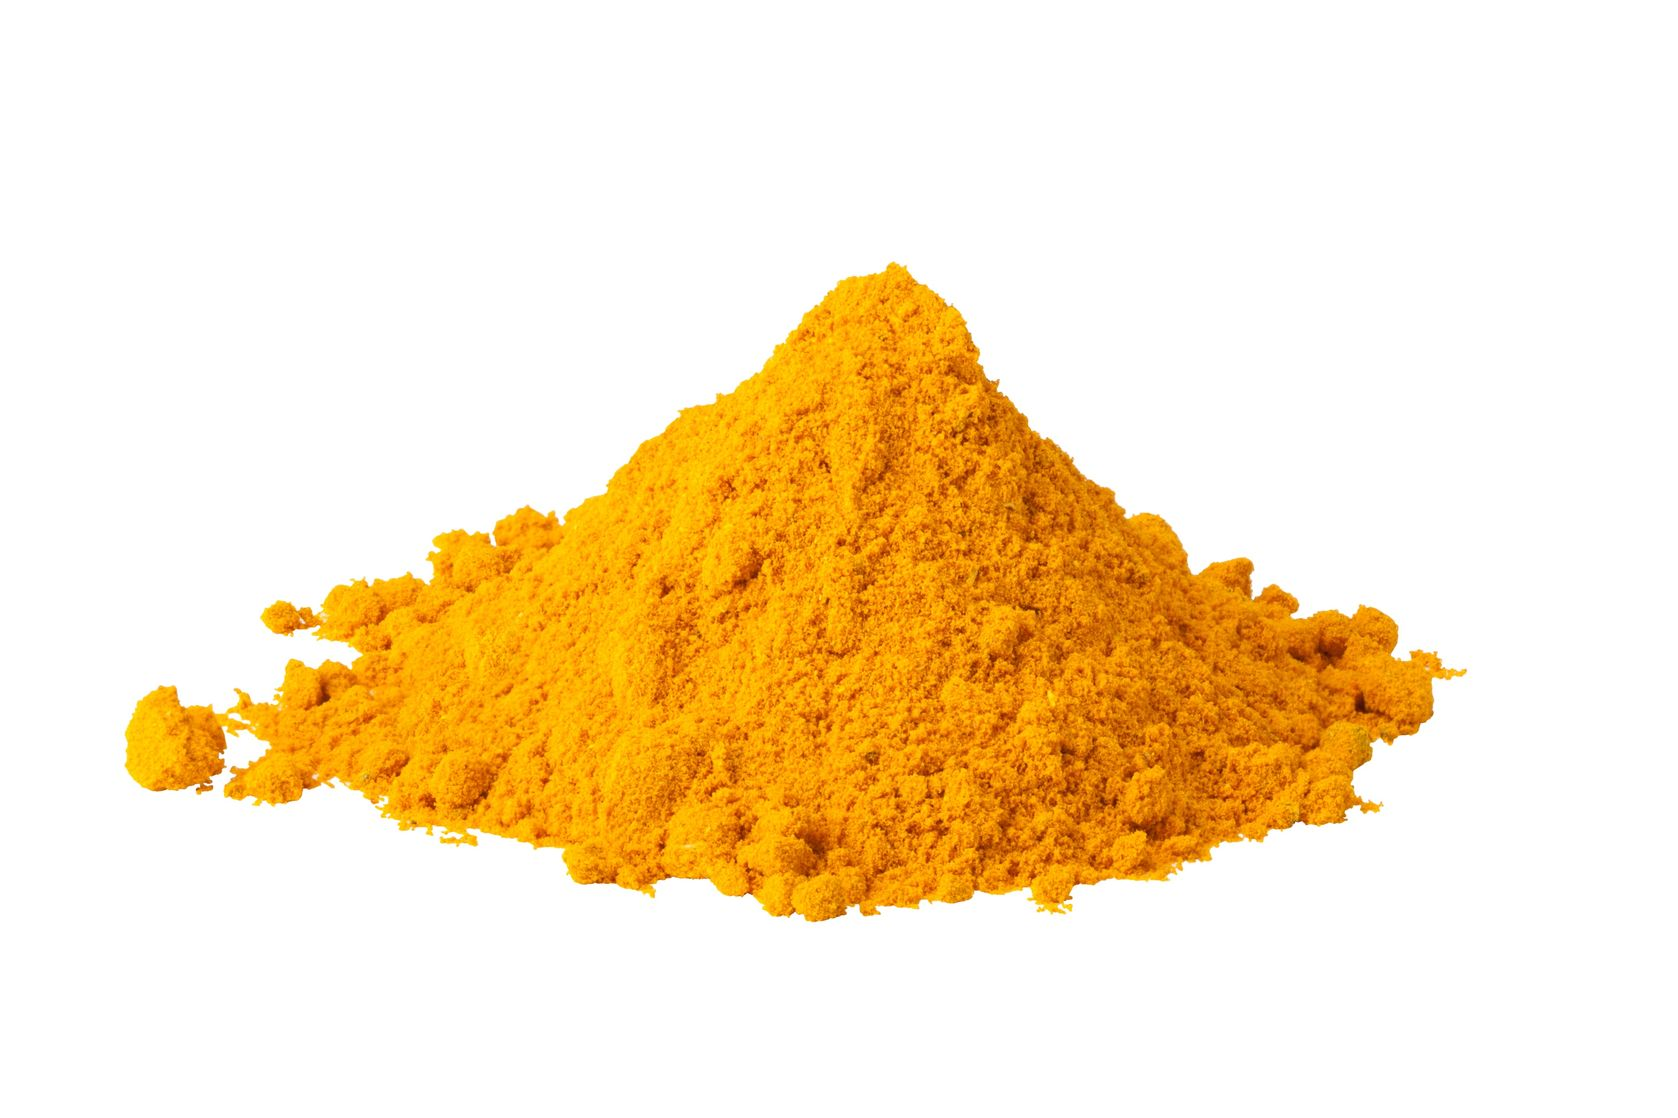 curcumin has anti-inflammatory effect in people with chronic kidney disease